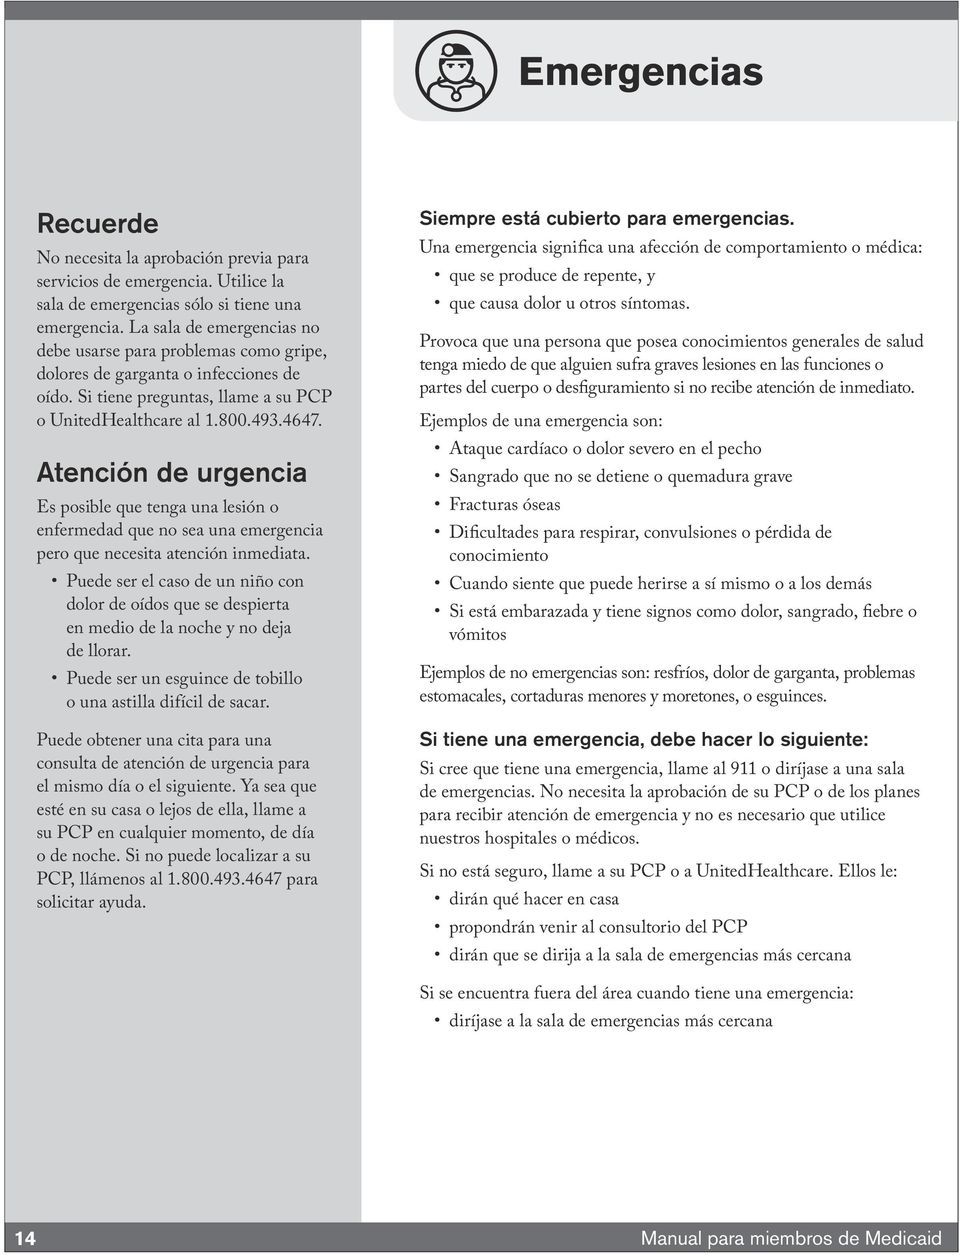 UnitedHealthcare Community Plan Manual para miembros de Medicaid - PDF